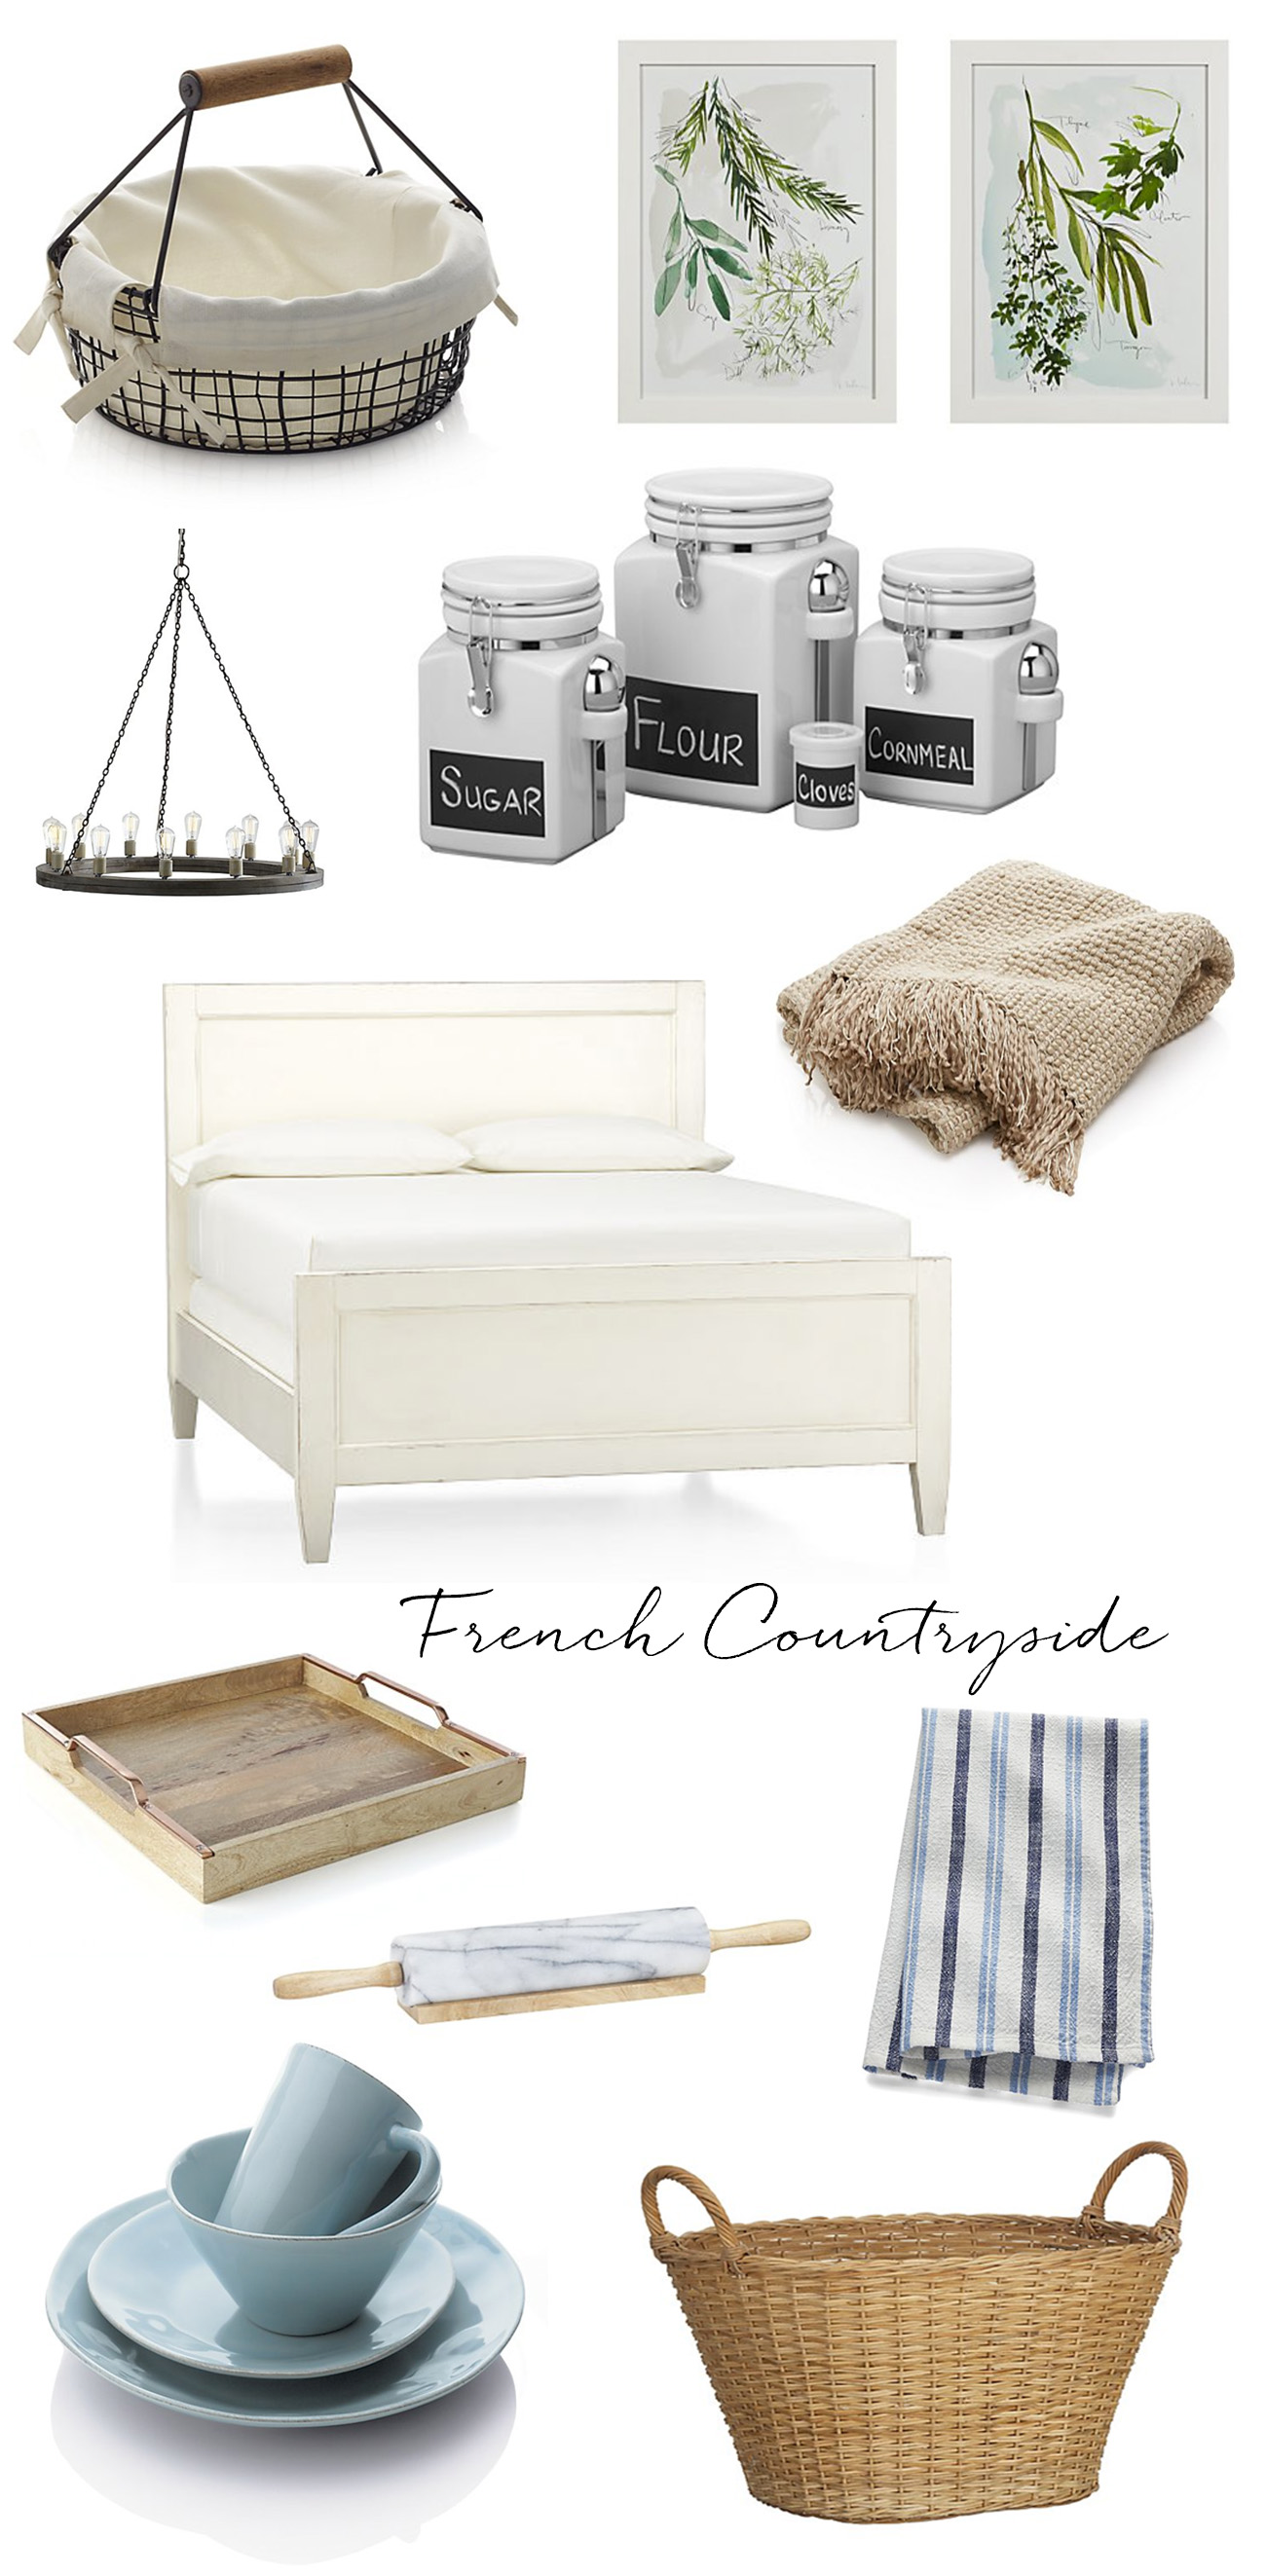 Decorating Your First Home Together with Crate and Barrel - Green ...